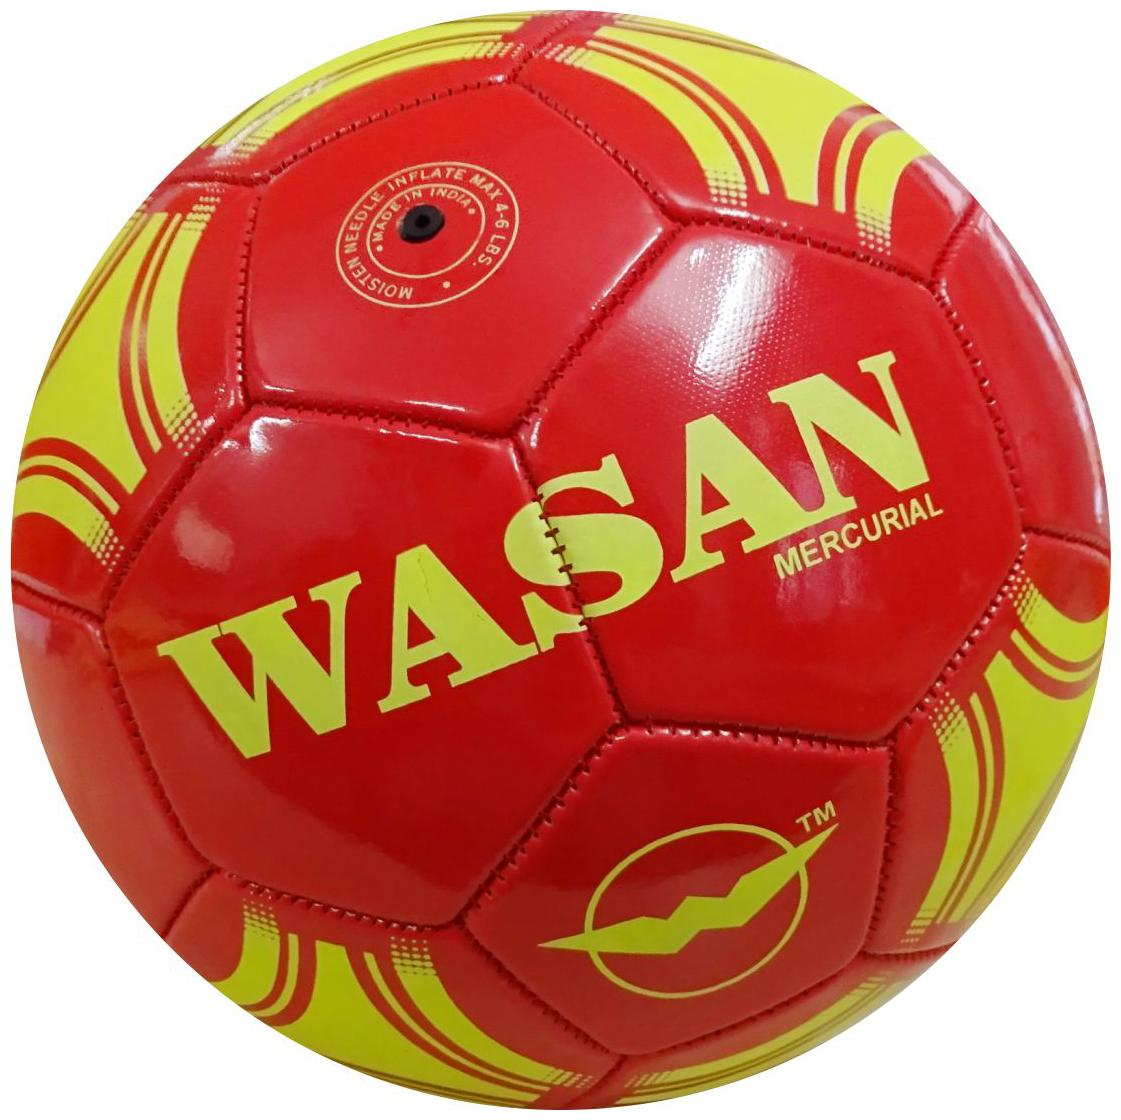 Wasan Mercurial Football Size 5   Vary in Colors/Assorted Colors